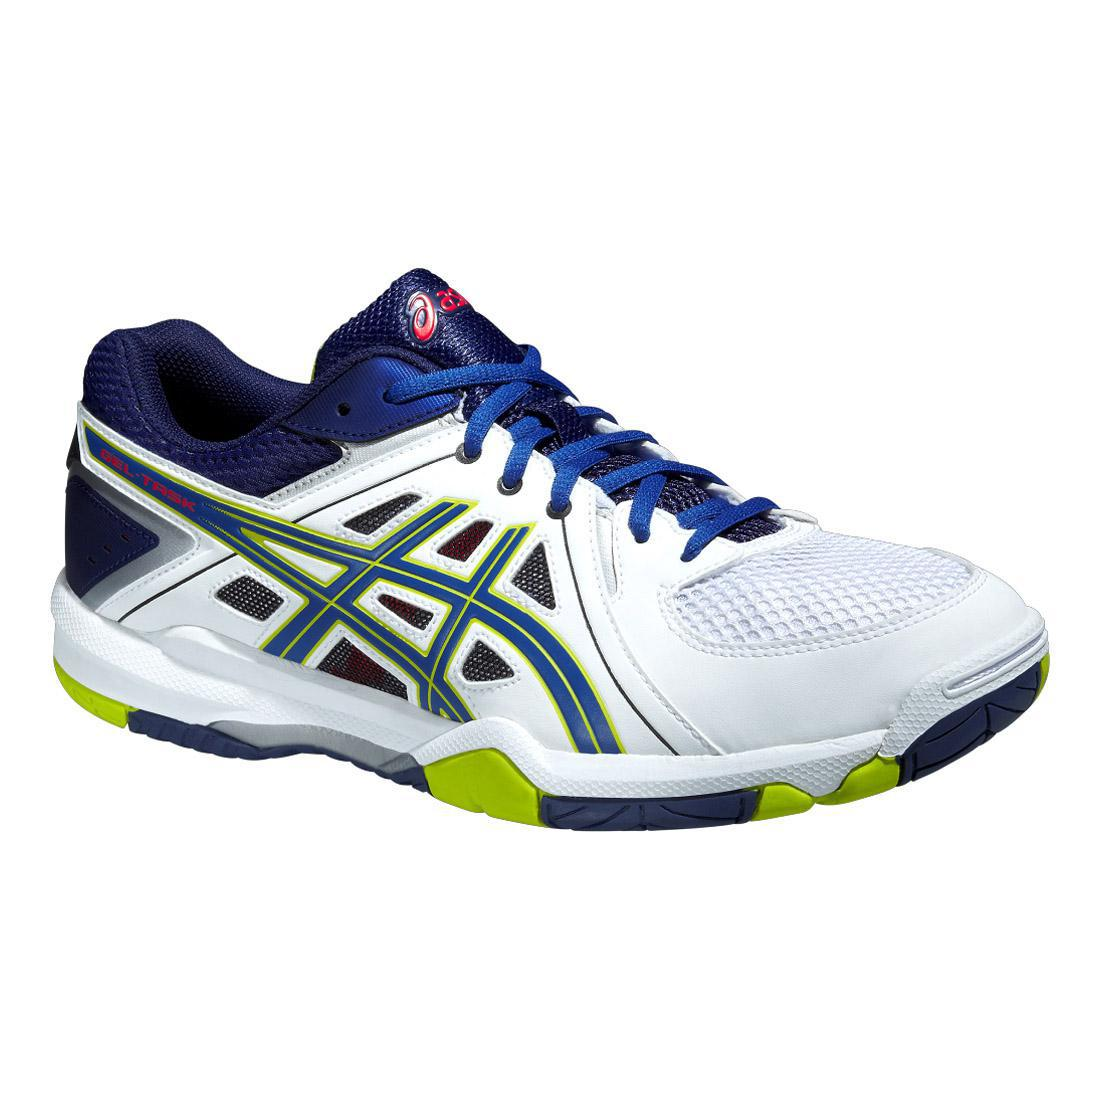 Asics Cricket Shoes On Sale